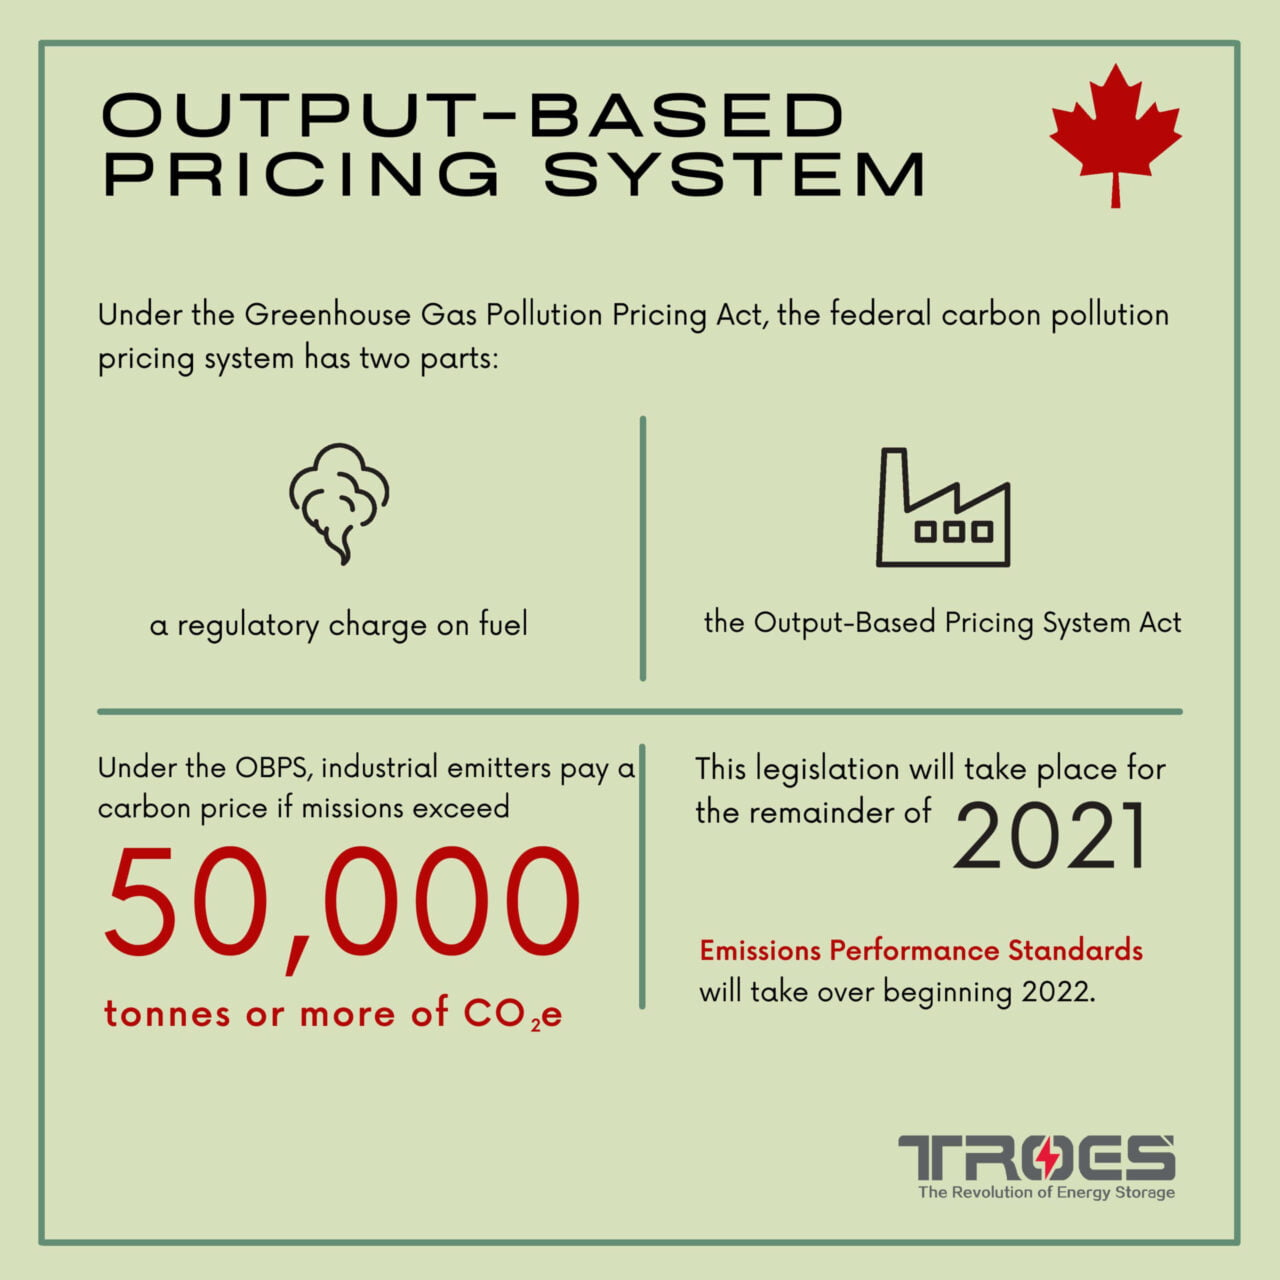 Future of Output Based Pricing System in 2022